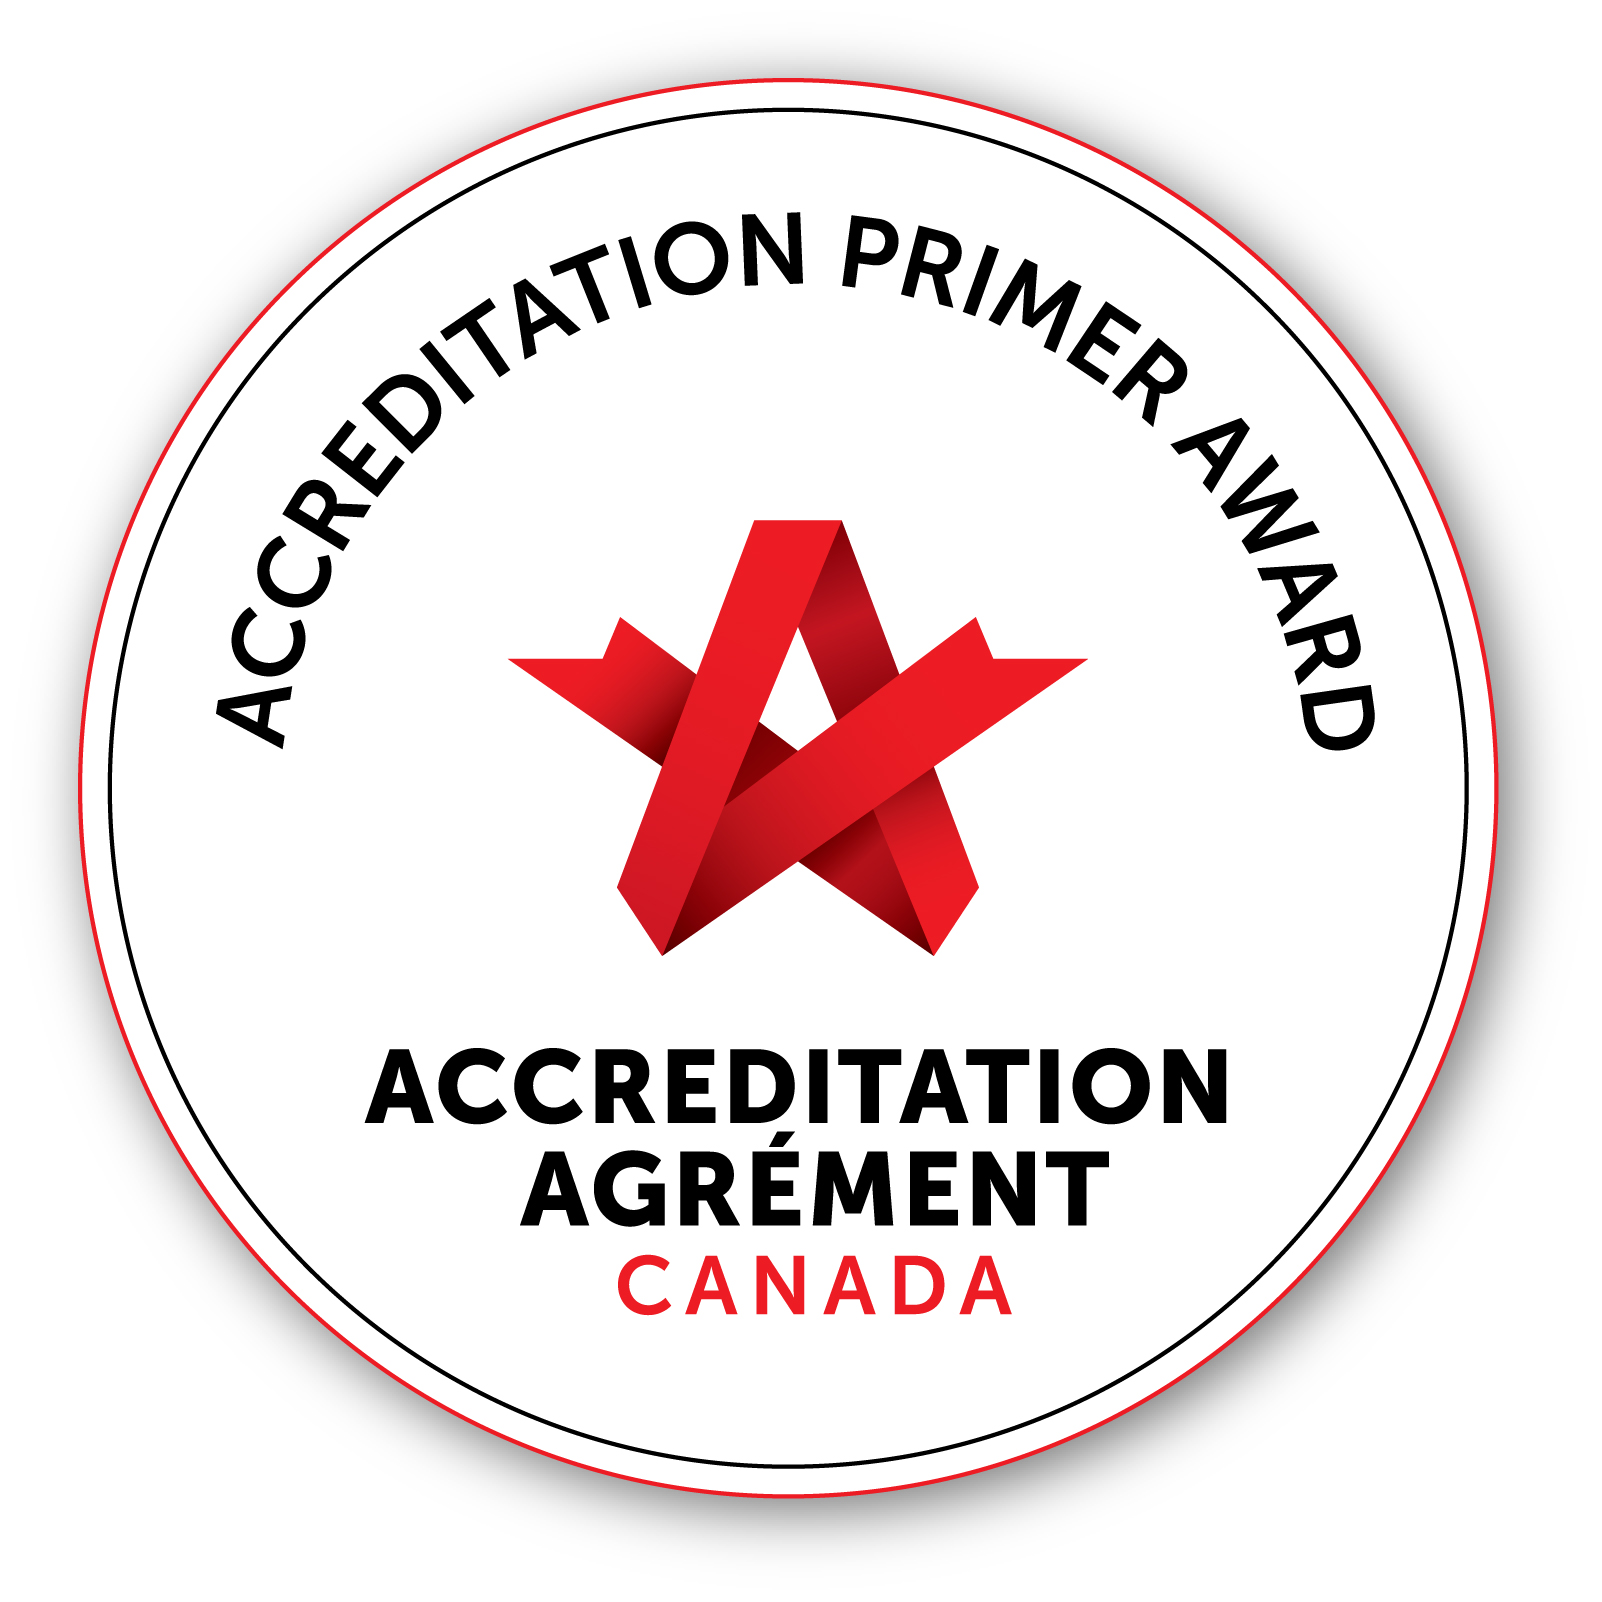 Accreditation Canada Primer Seal of Approval